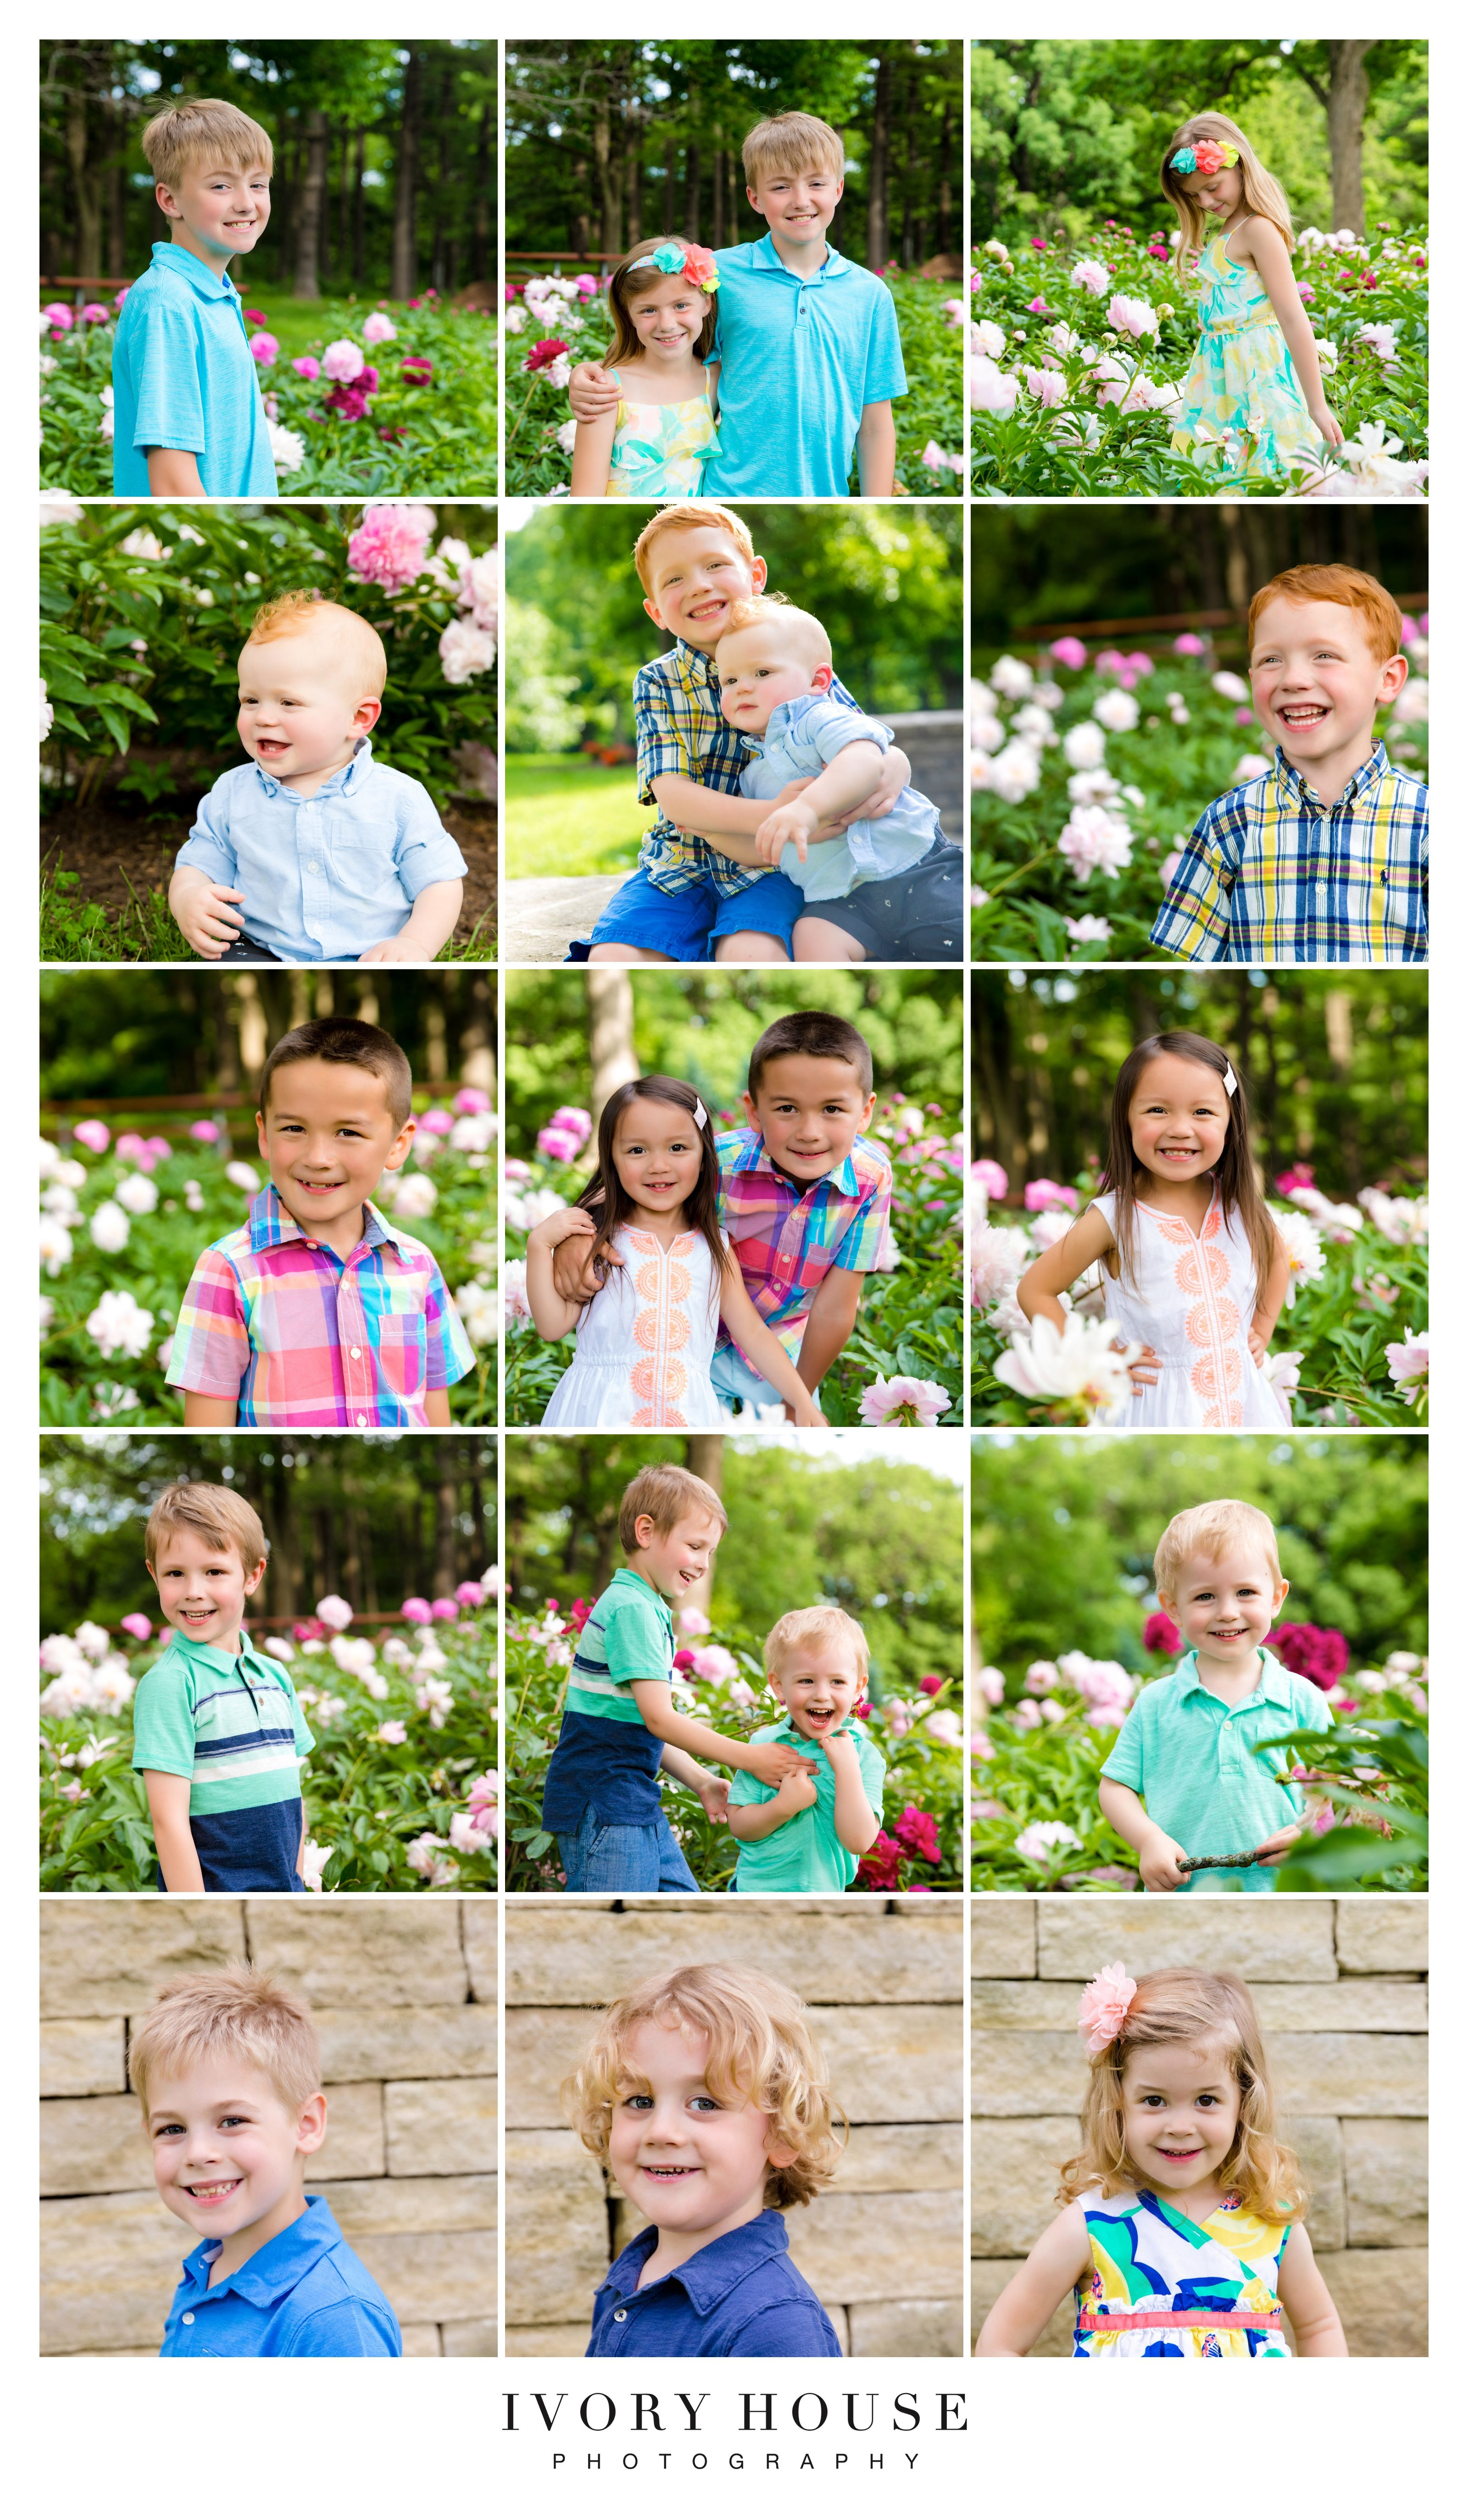 Family photos with ivory house photography capture your